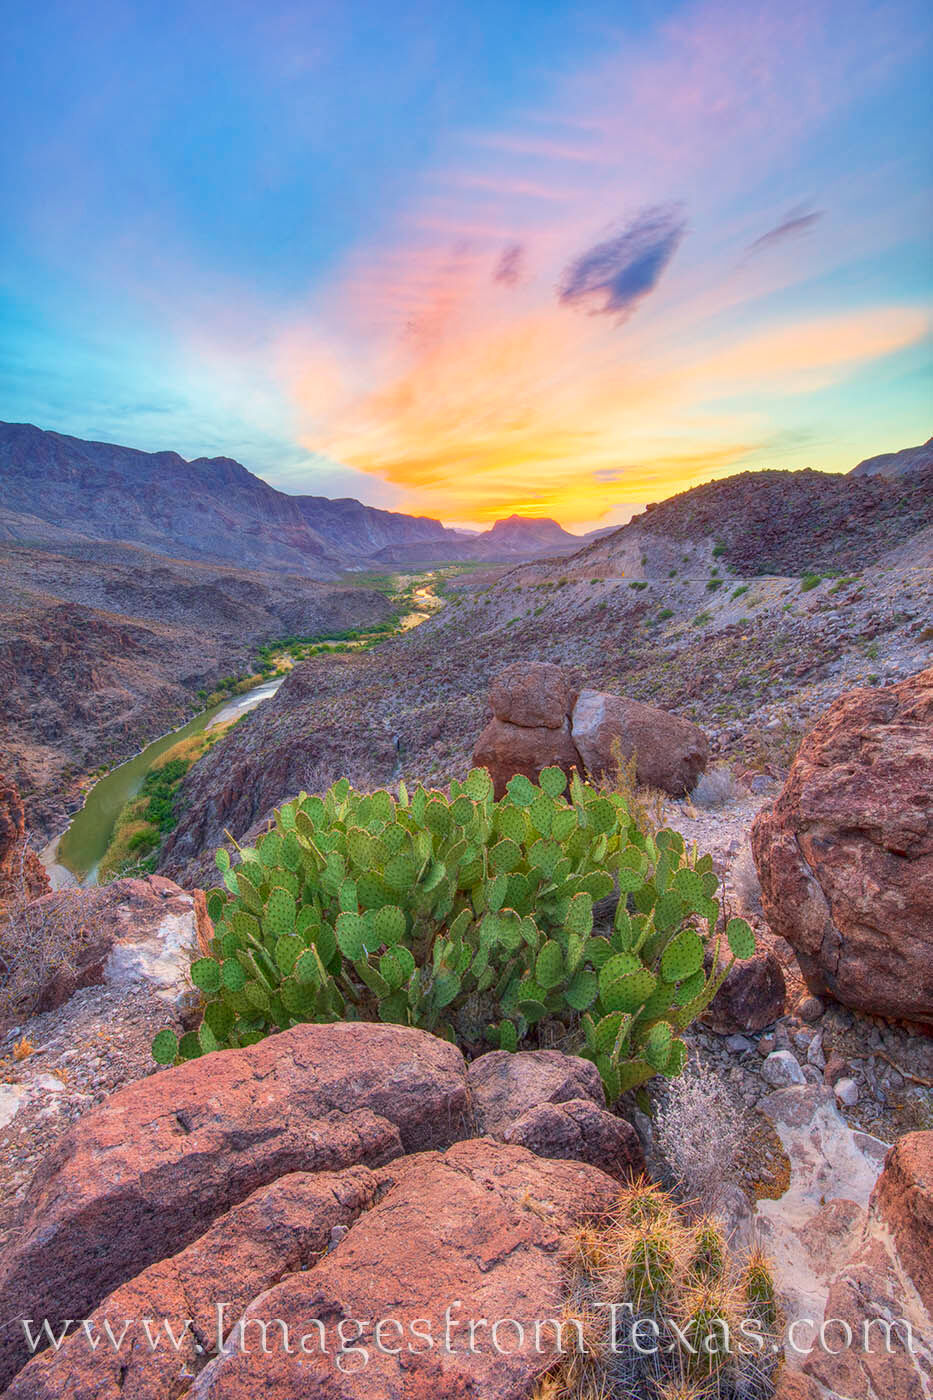 Big Bend Ranch State Park is a pleasure to explore, and some of the best views are easily accessible. One of my favorite locations...